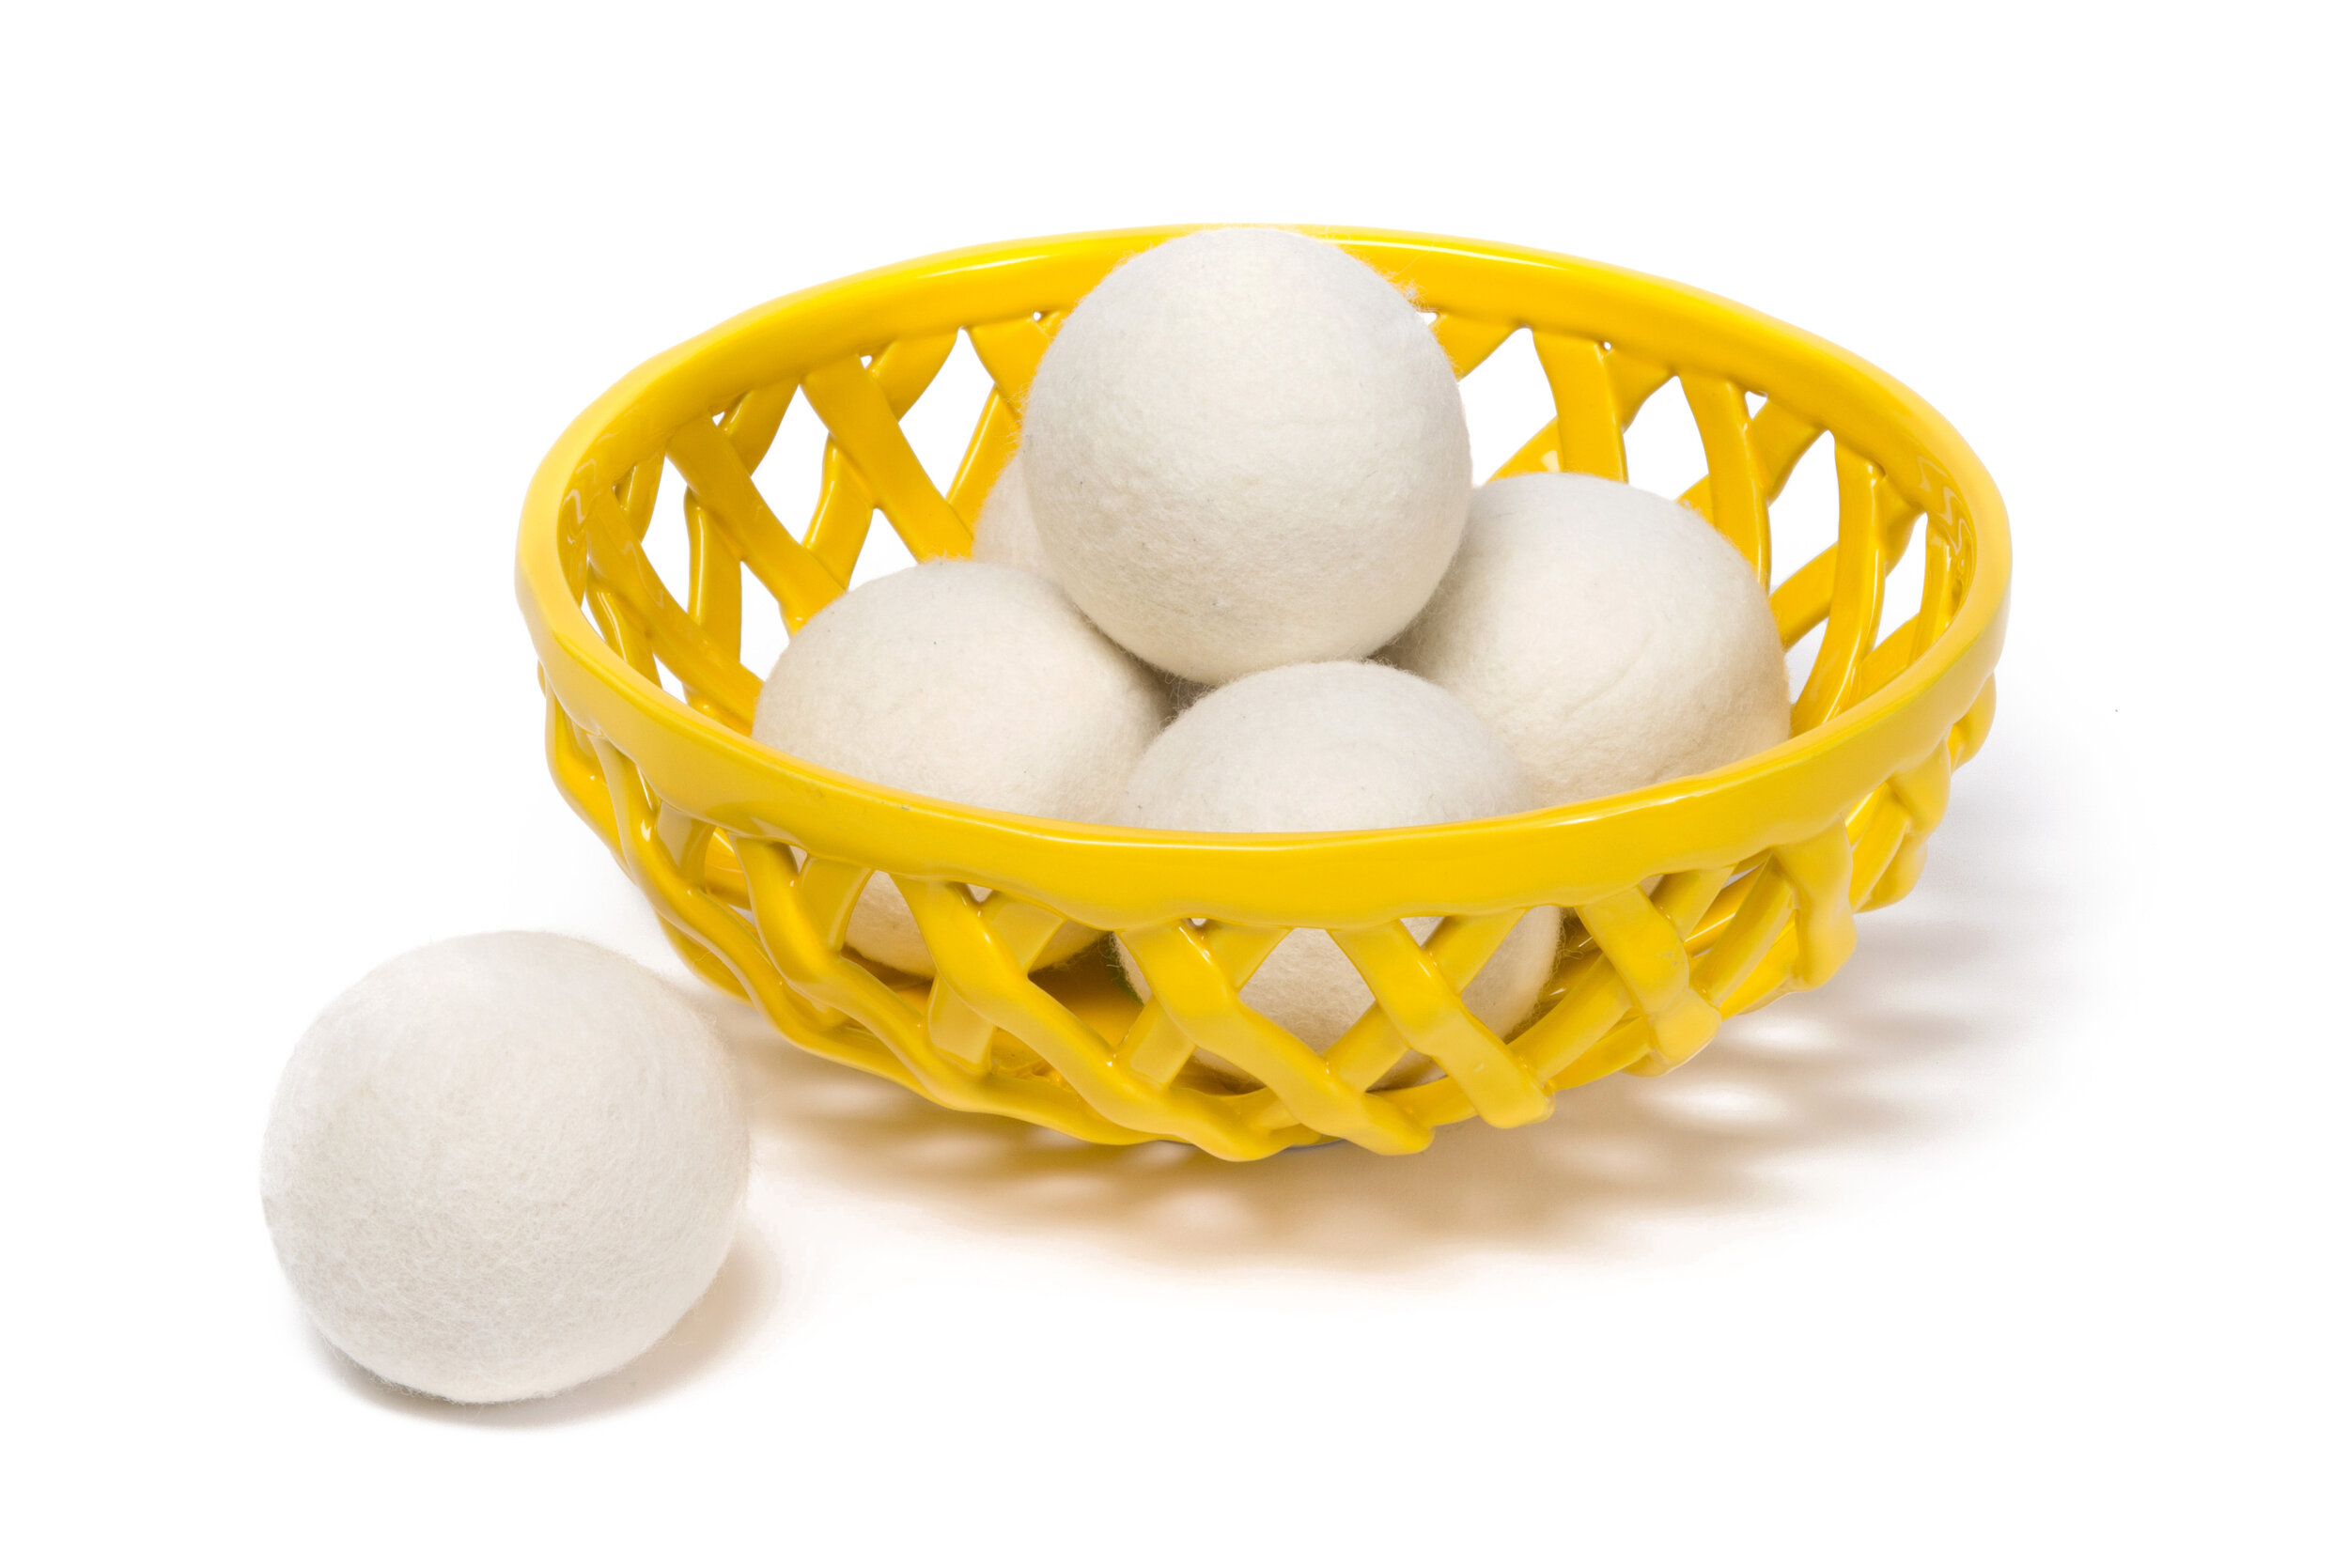 Wool Dryer Balls.jpg